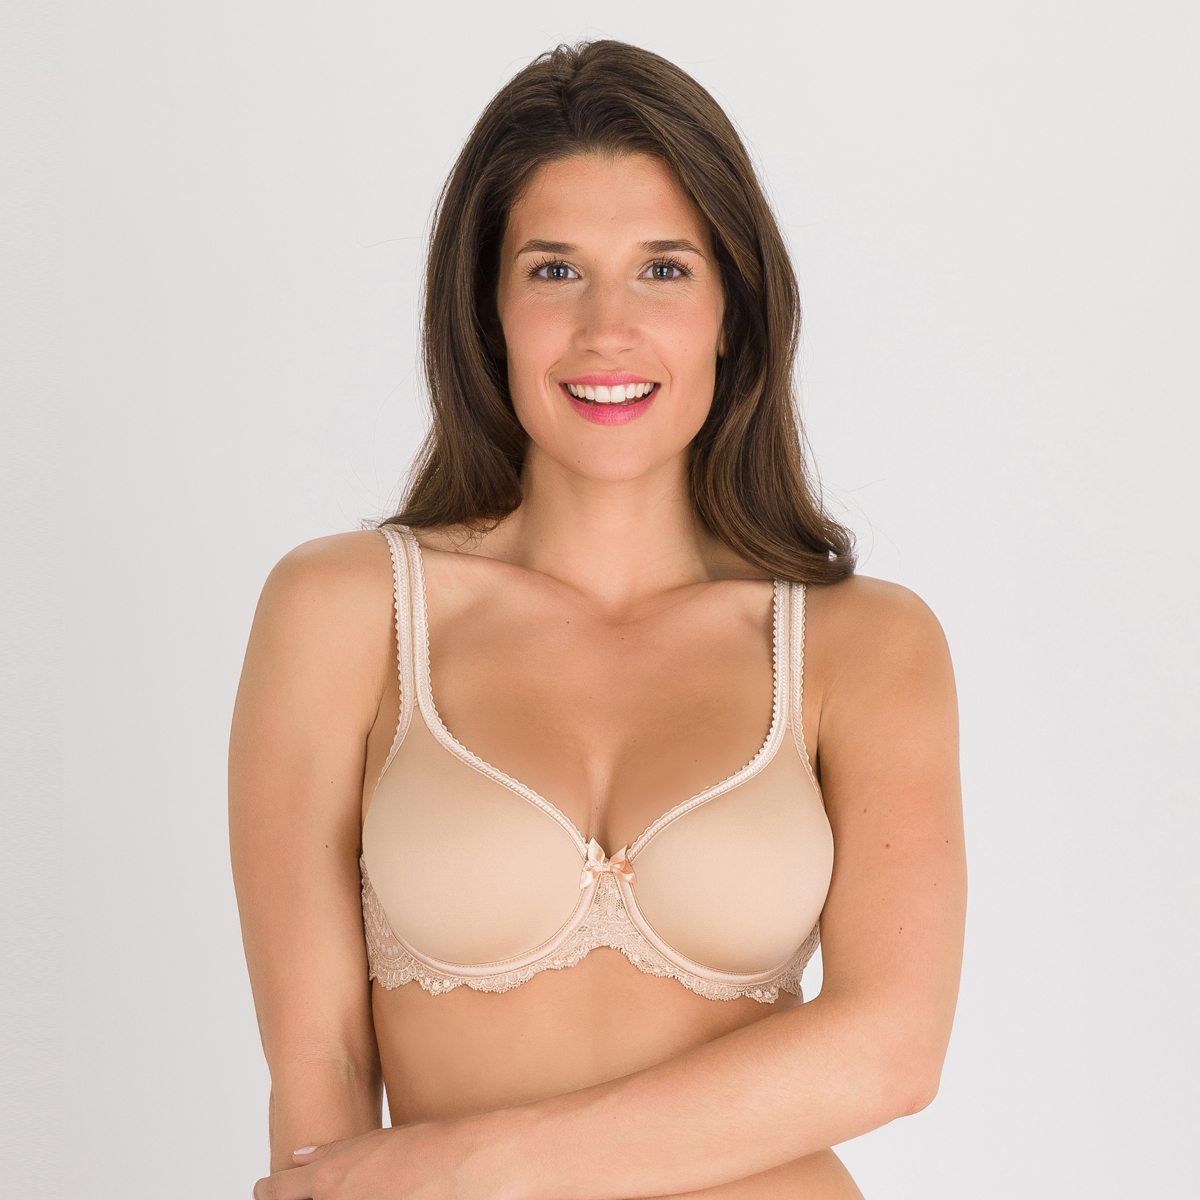 Spacer bra in beige - Flower Elegance, , PLAYTEX